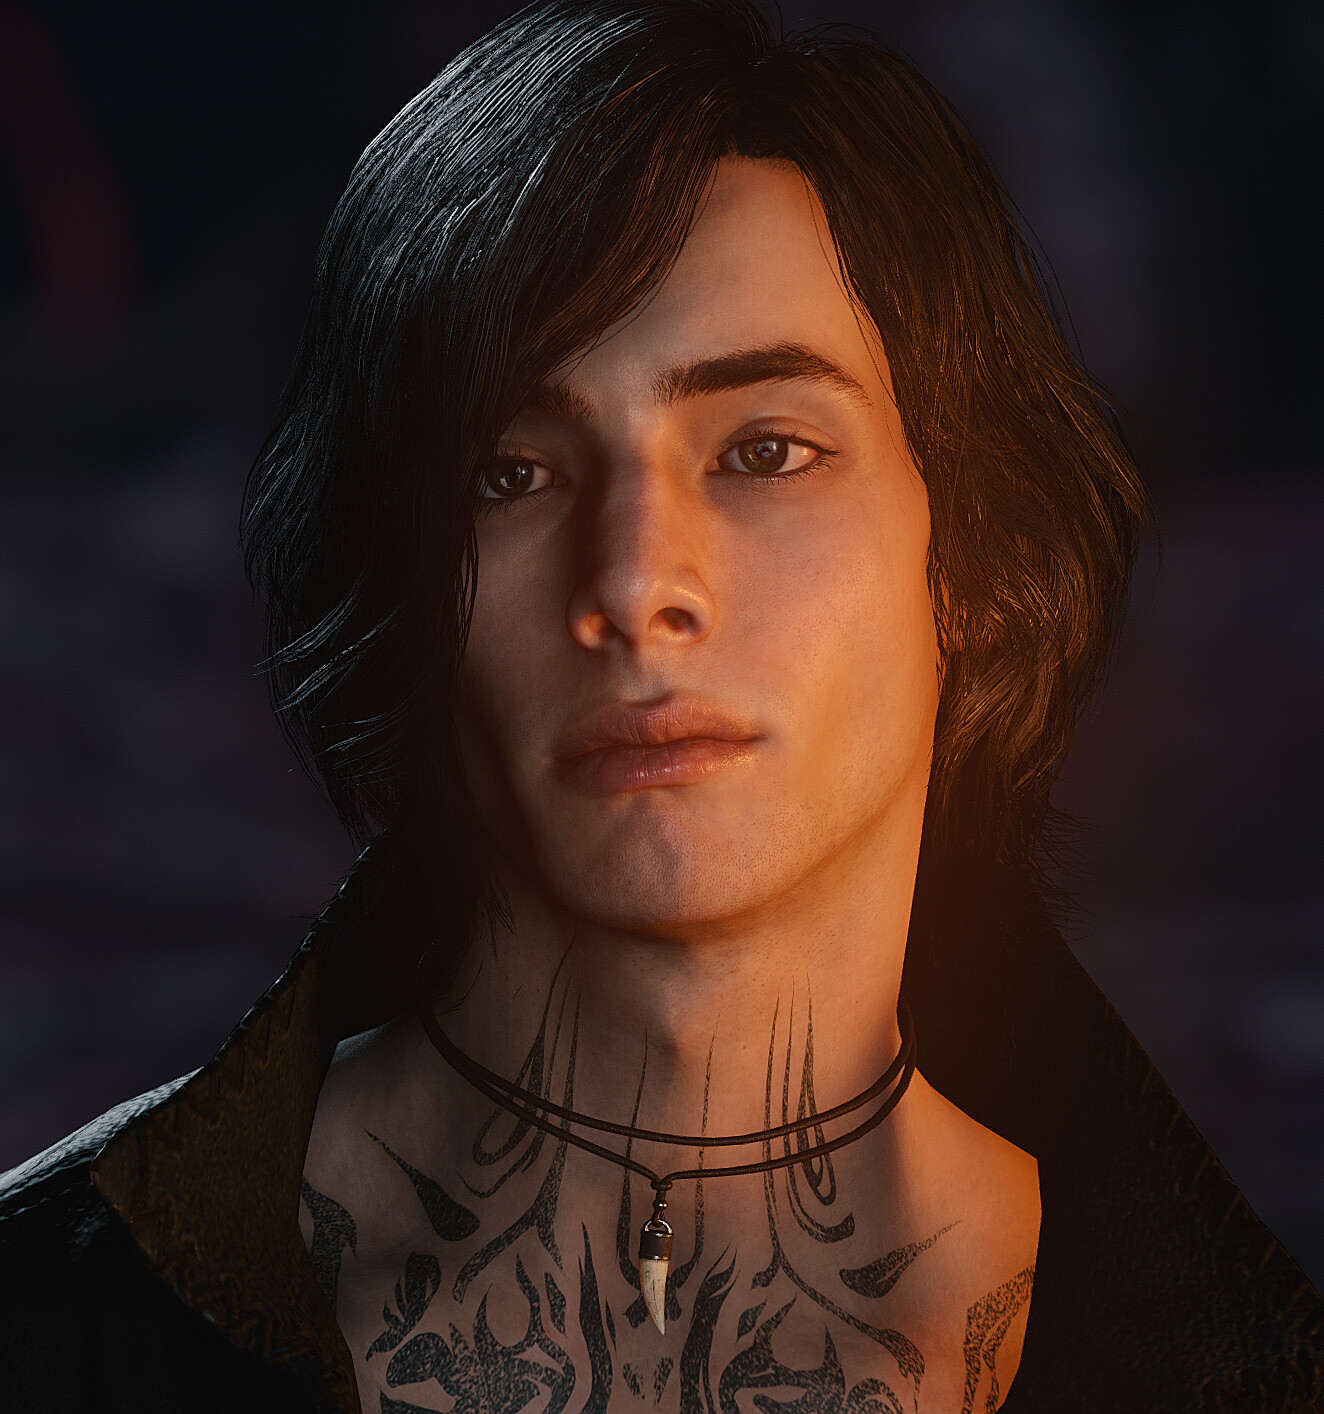 46506527685_132dc1ca97_h.jpg - Devil May Cry 5